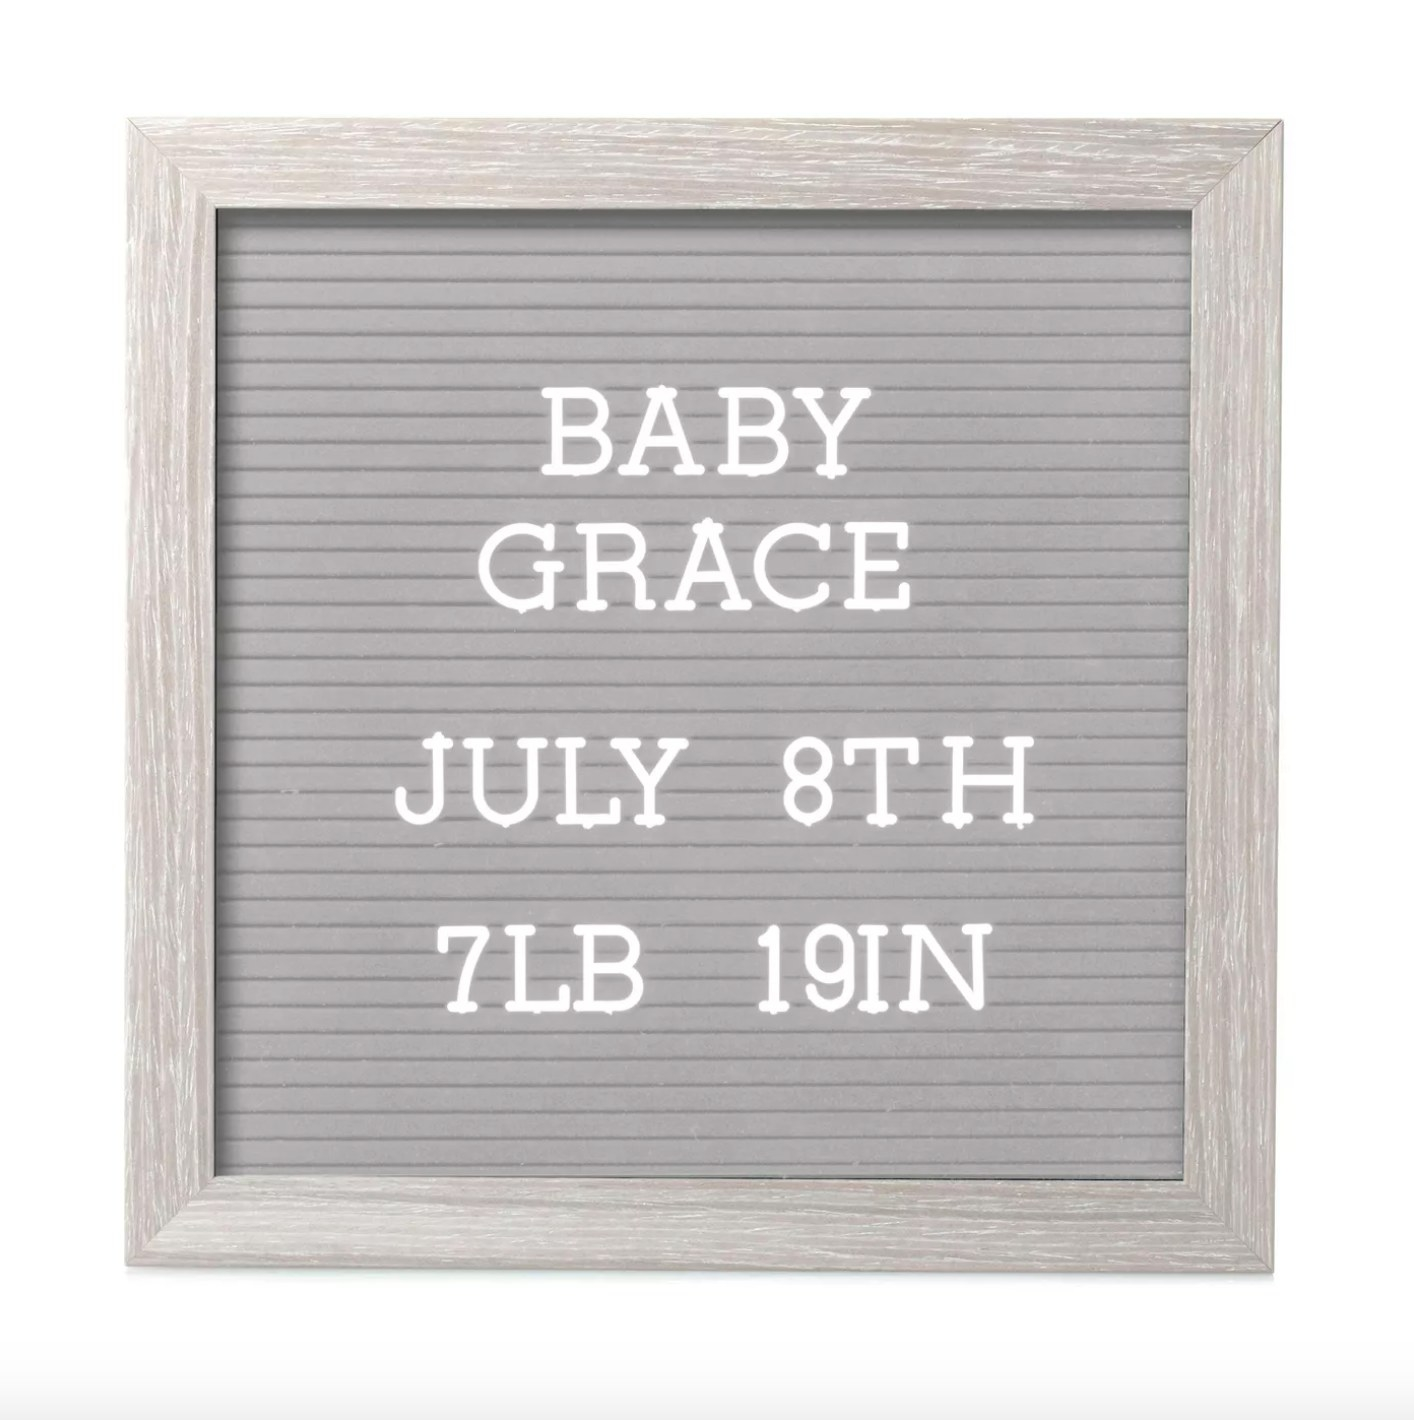 The letterboard in gray with a faux wood frame